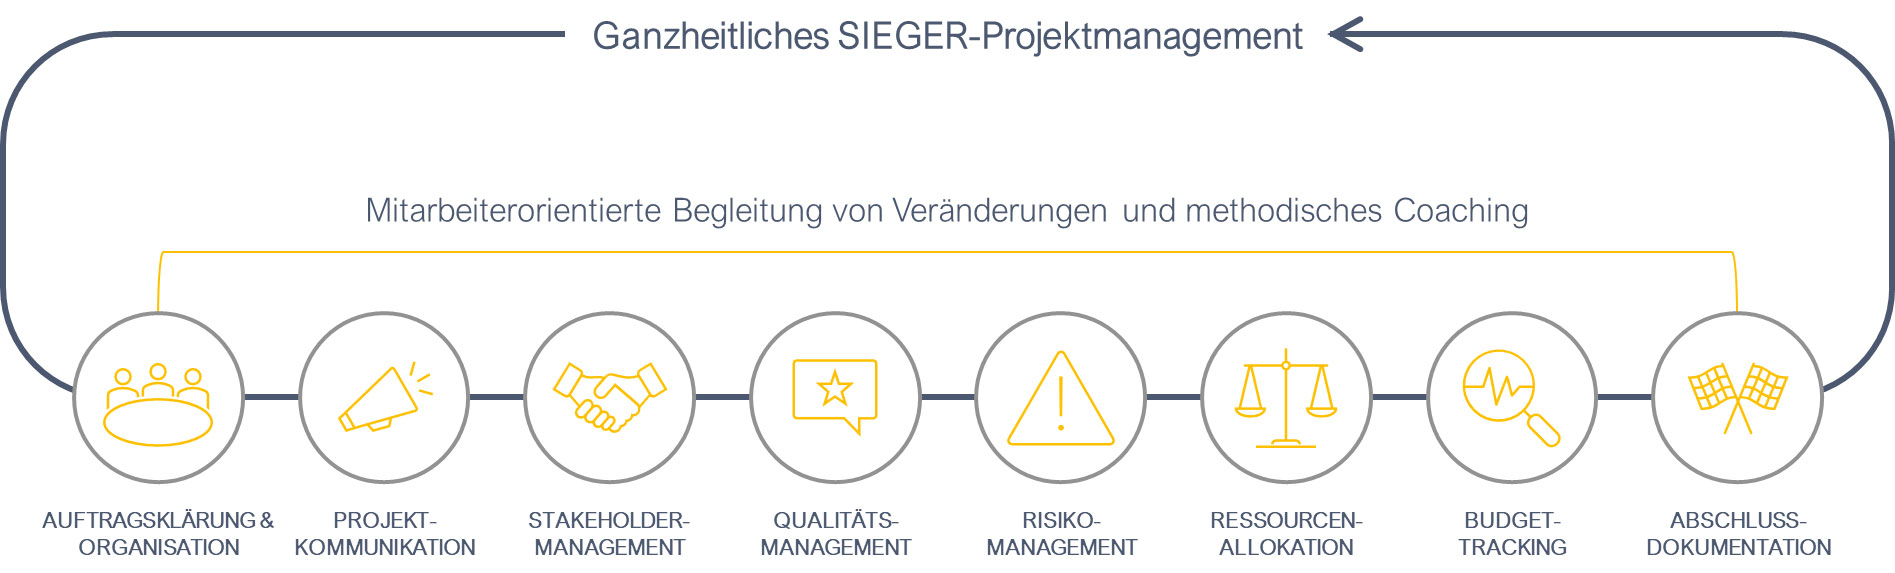 Projektmanagement1